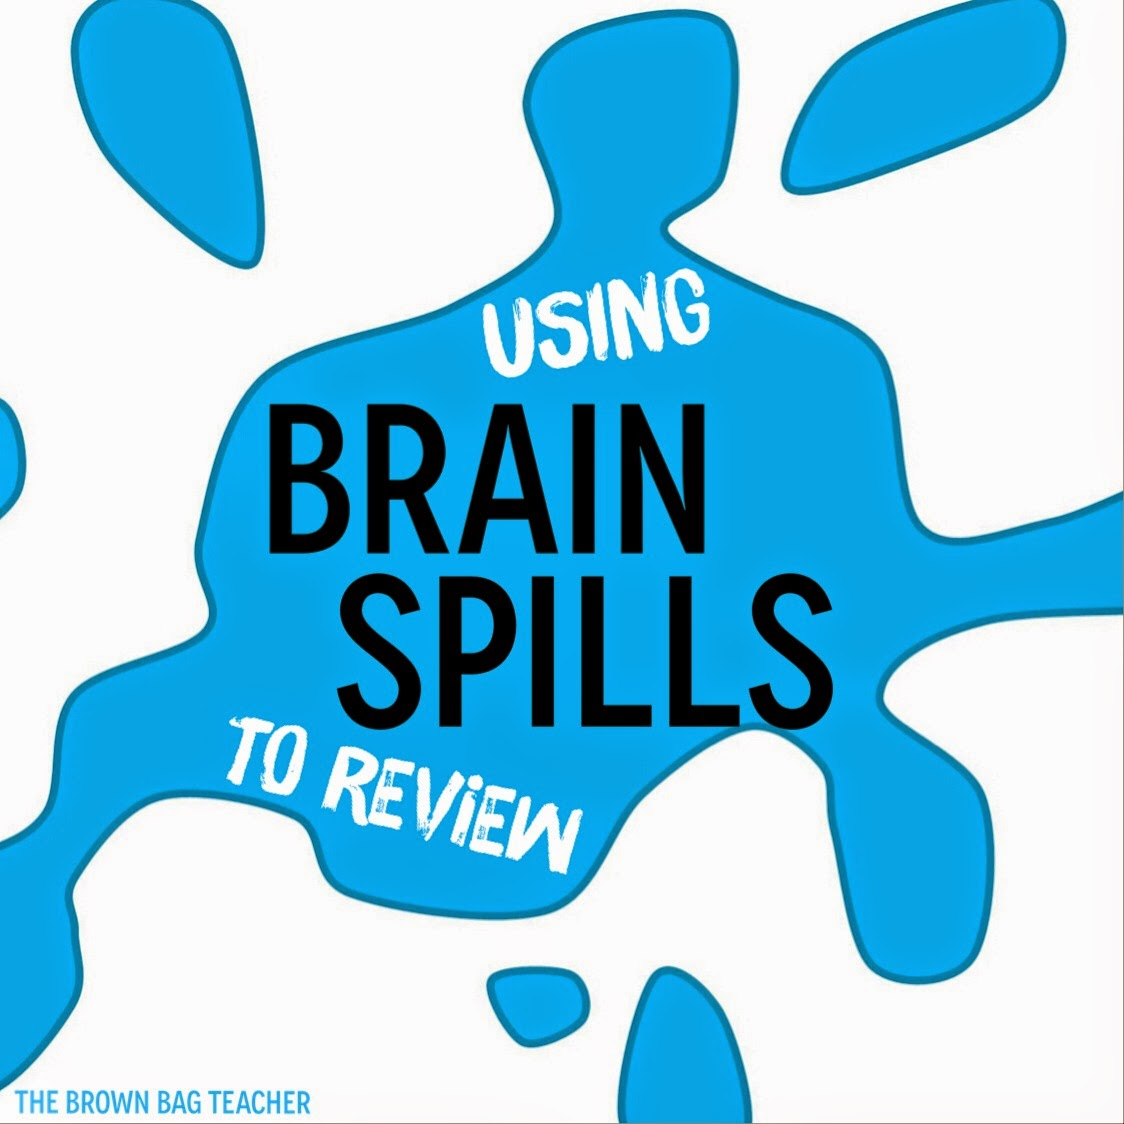 Fast-paced Review with Brain Spills | The Brown-Bag Teacher | Bloglovin\'